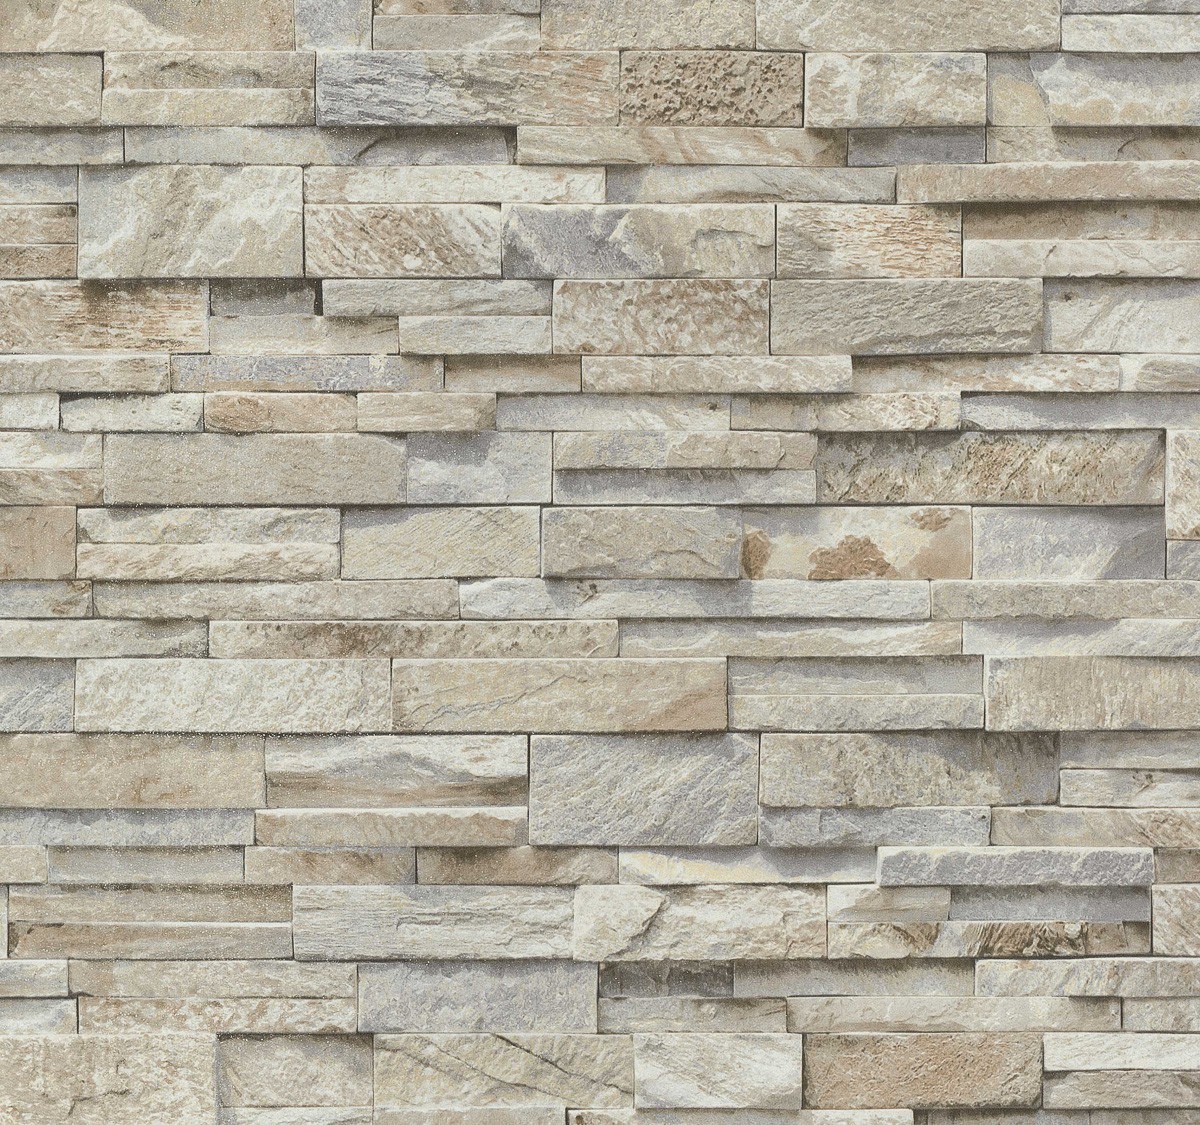 Wallpaper stone stones wall brick beige grey ps 02363 10 for Tapete steinwand